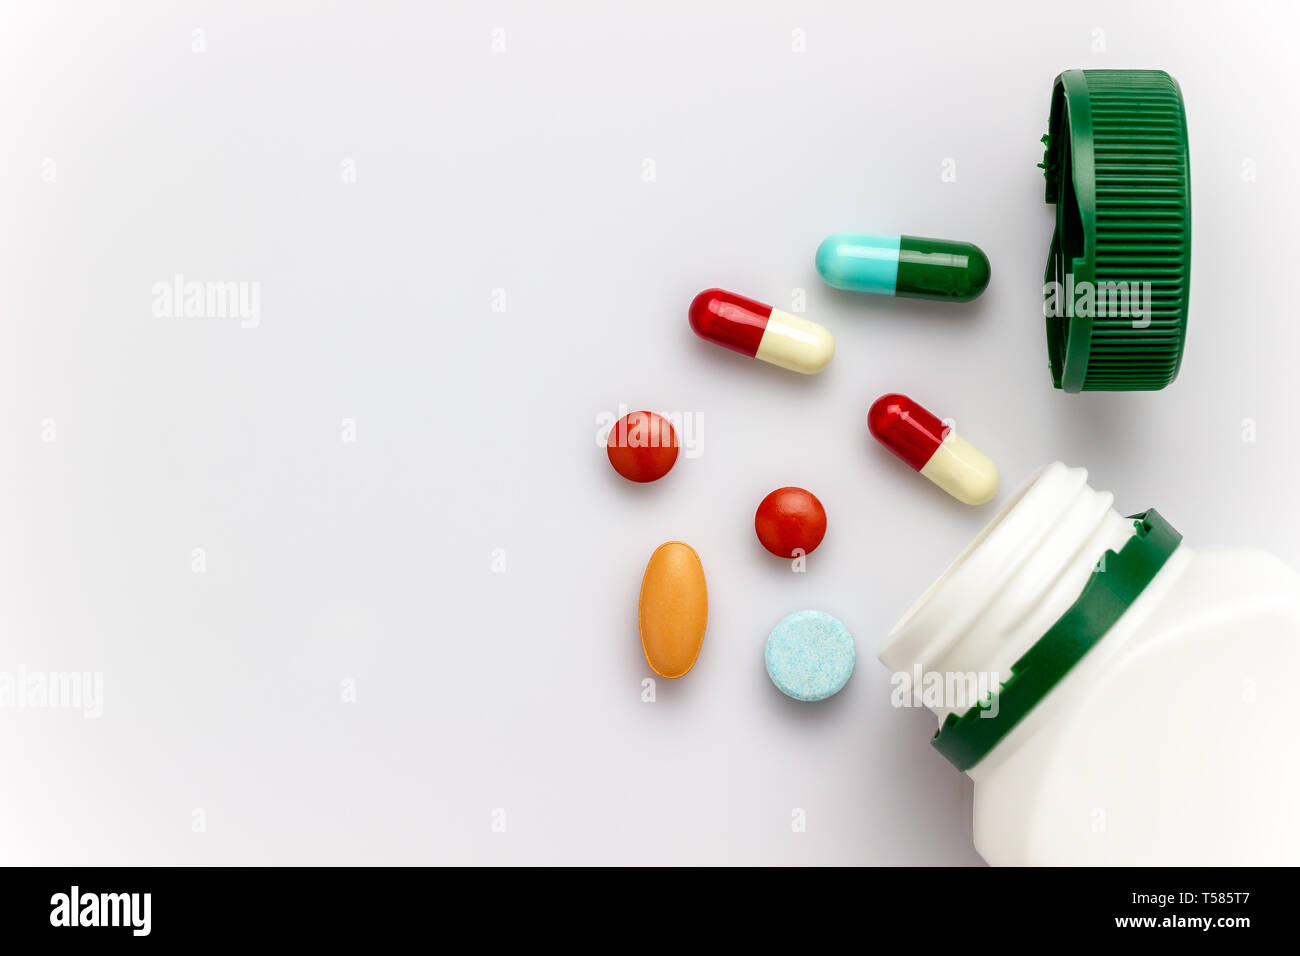 Multicoloured capsules with white medicine bottles and green caps on white background. Copy space for text or articles. Concepts of health and medicin Stock Photo